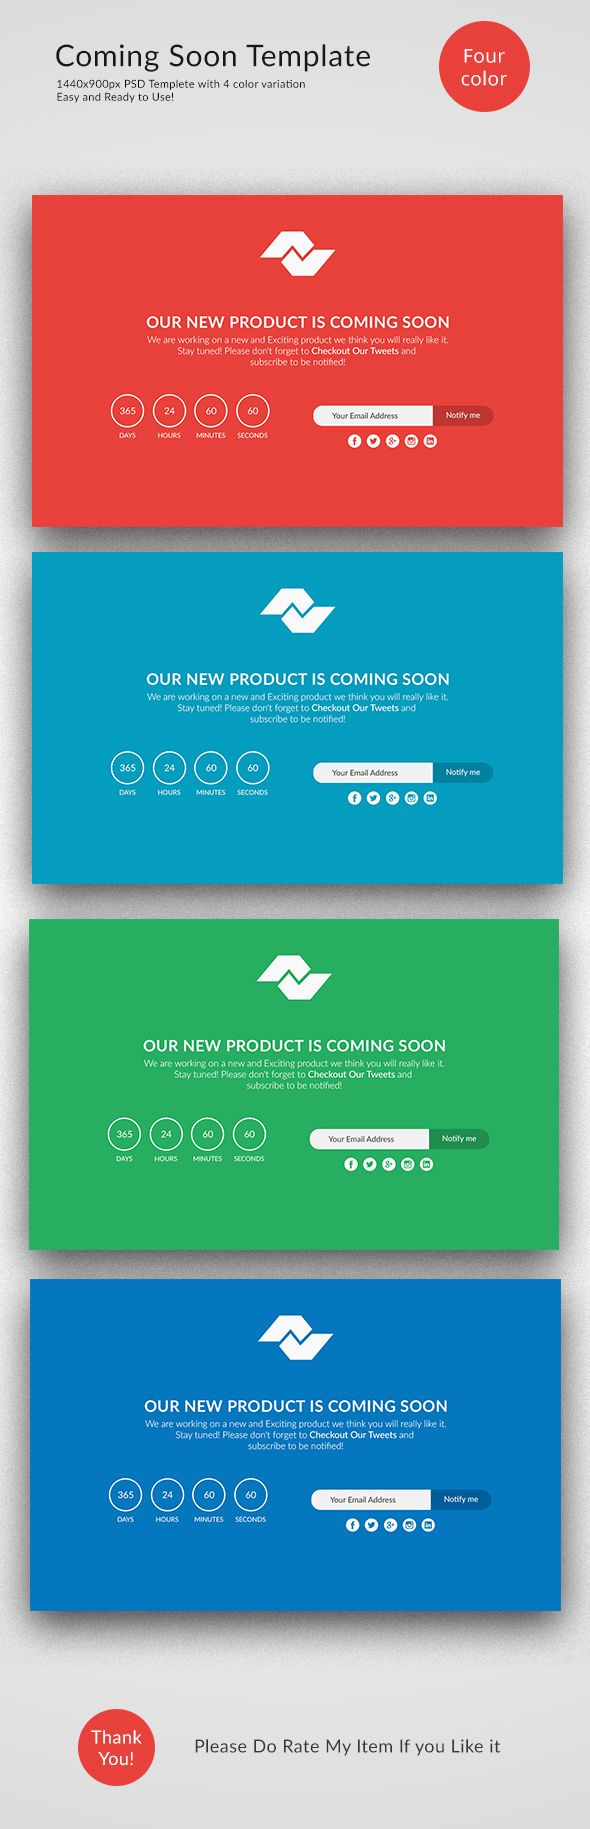 Flat Design Coming Soon Template   http://graphicriver.net/item/flat-design-coming-soon-page/13688620?ref=ruminated